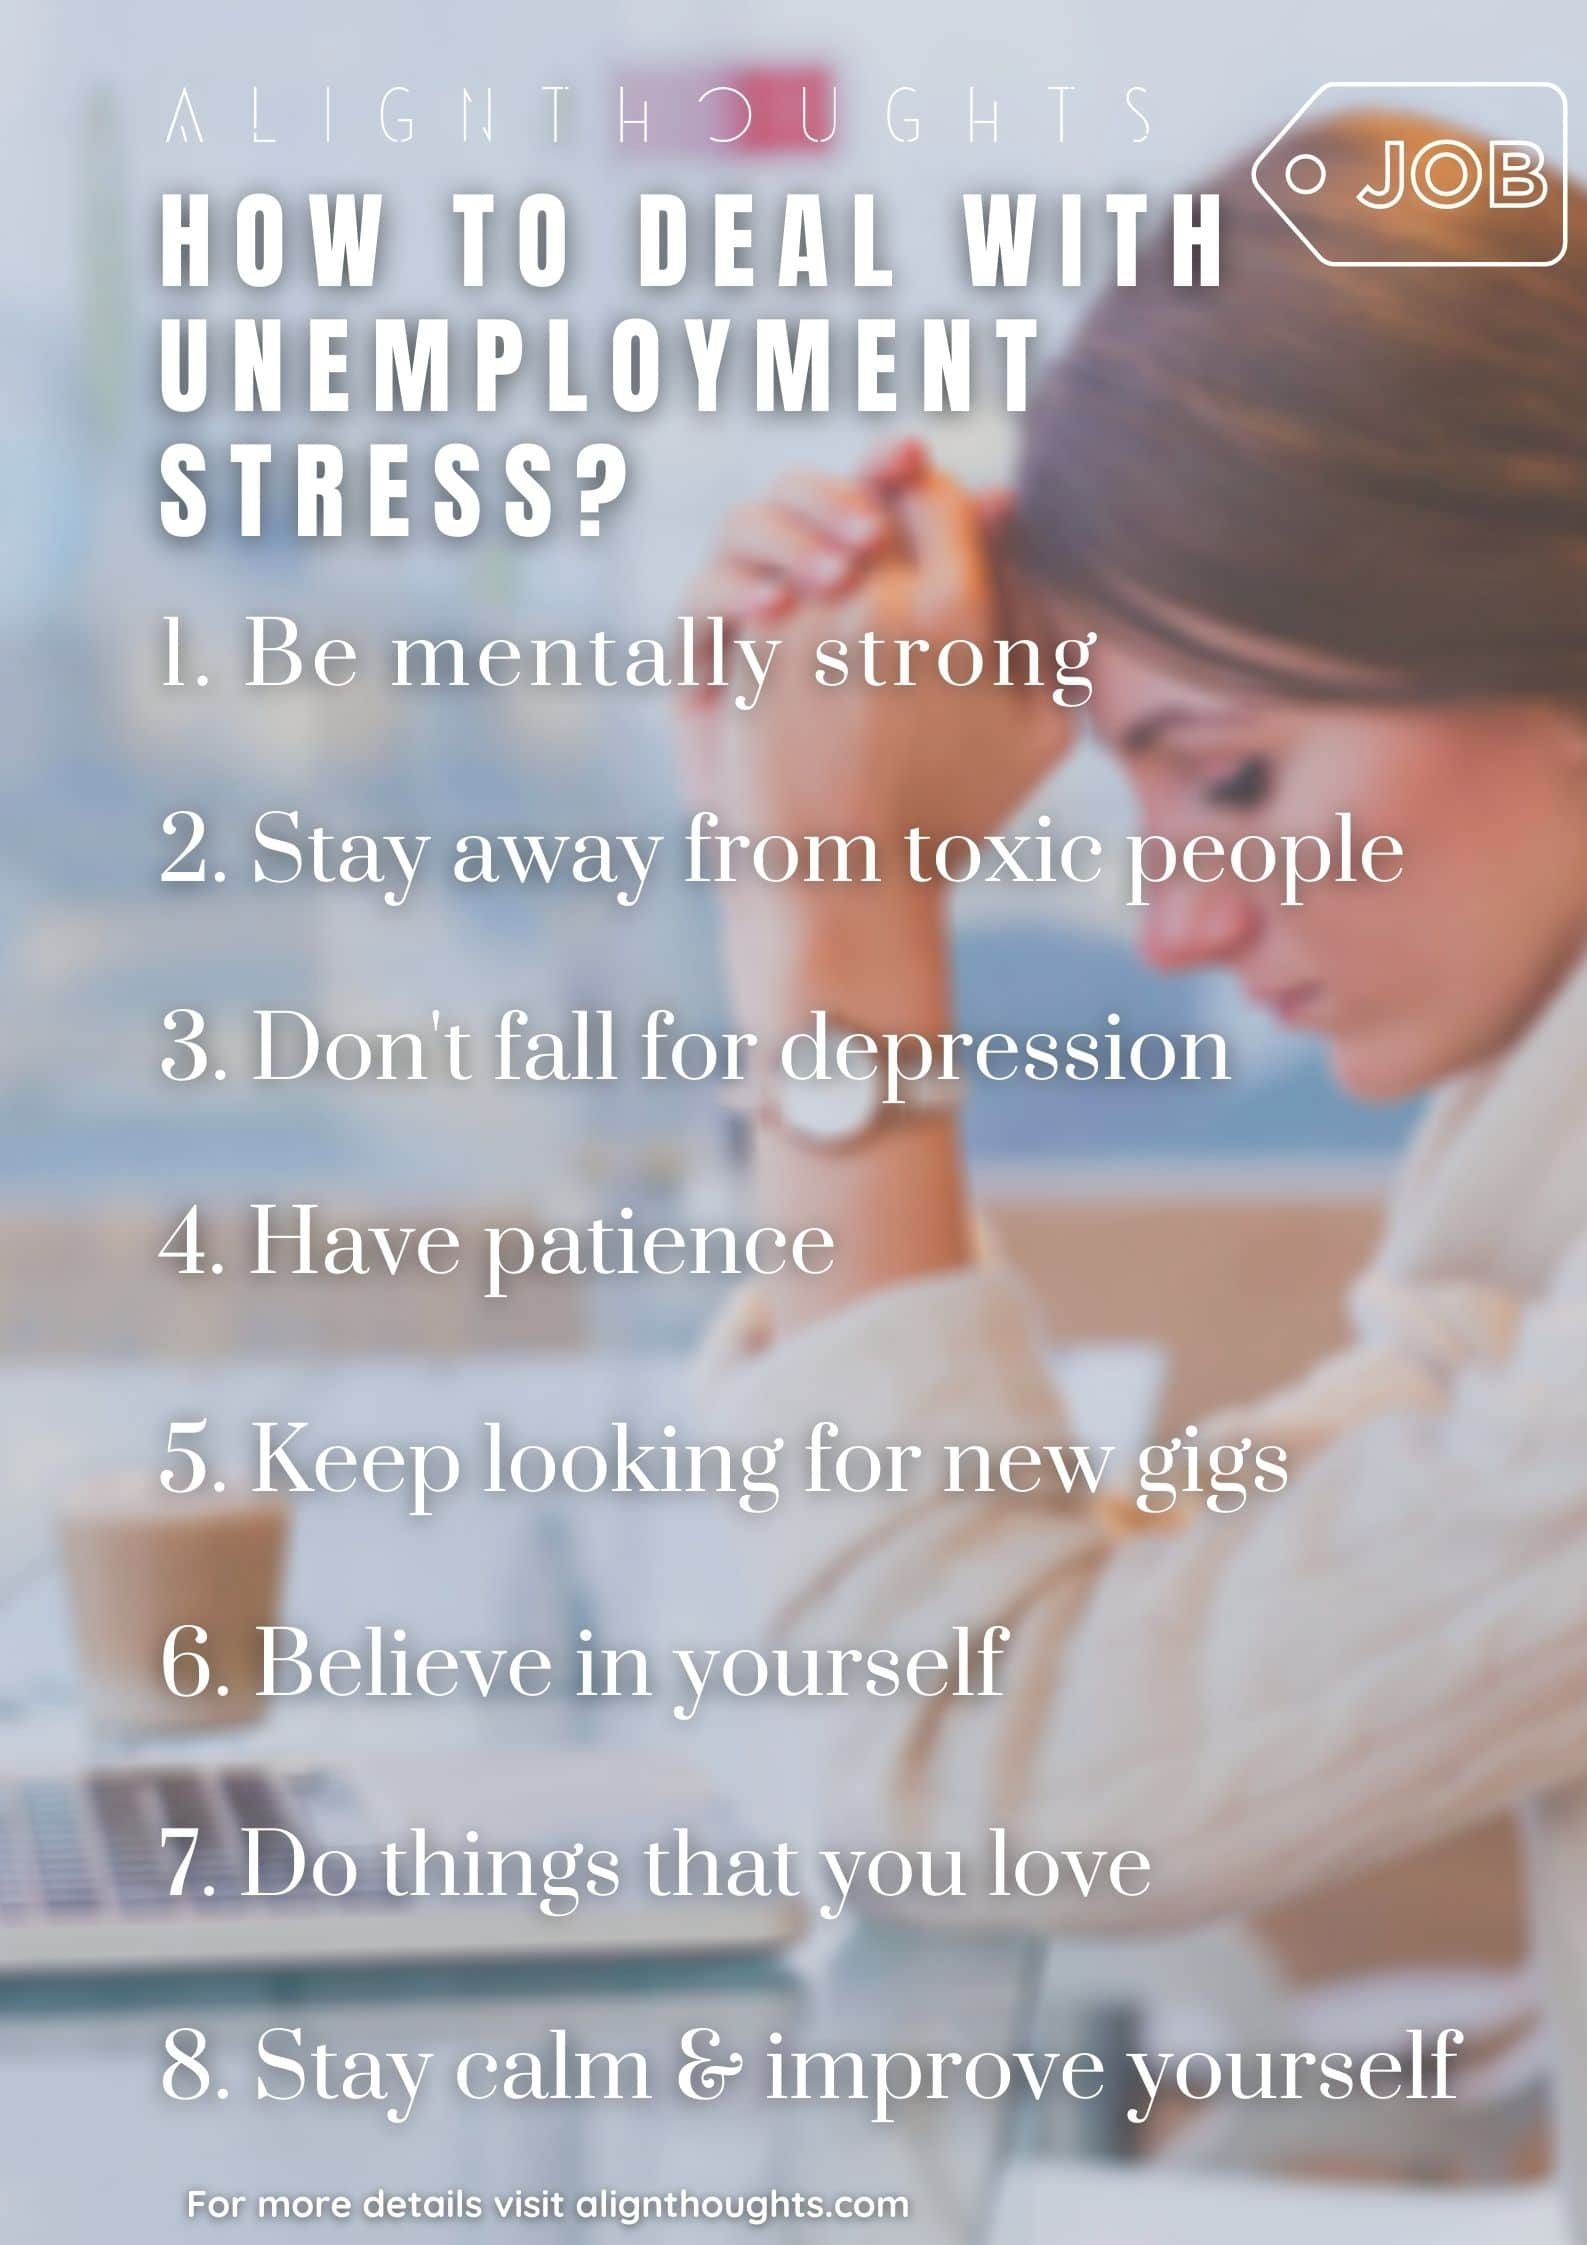 how to deal with unemployment stress-alignthoughts